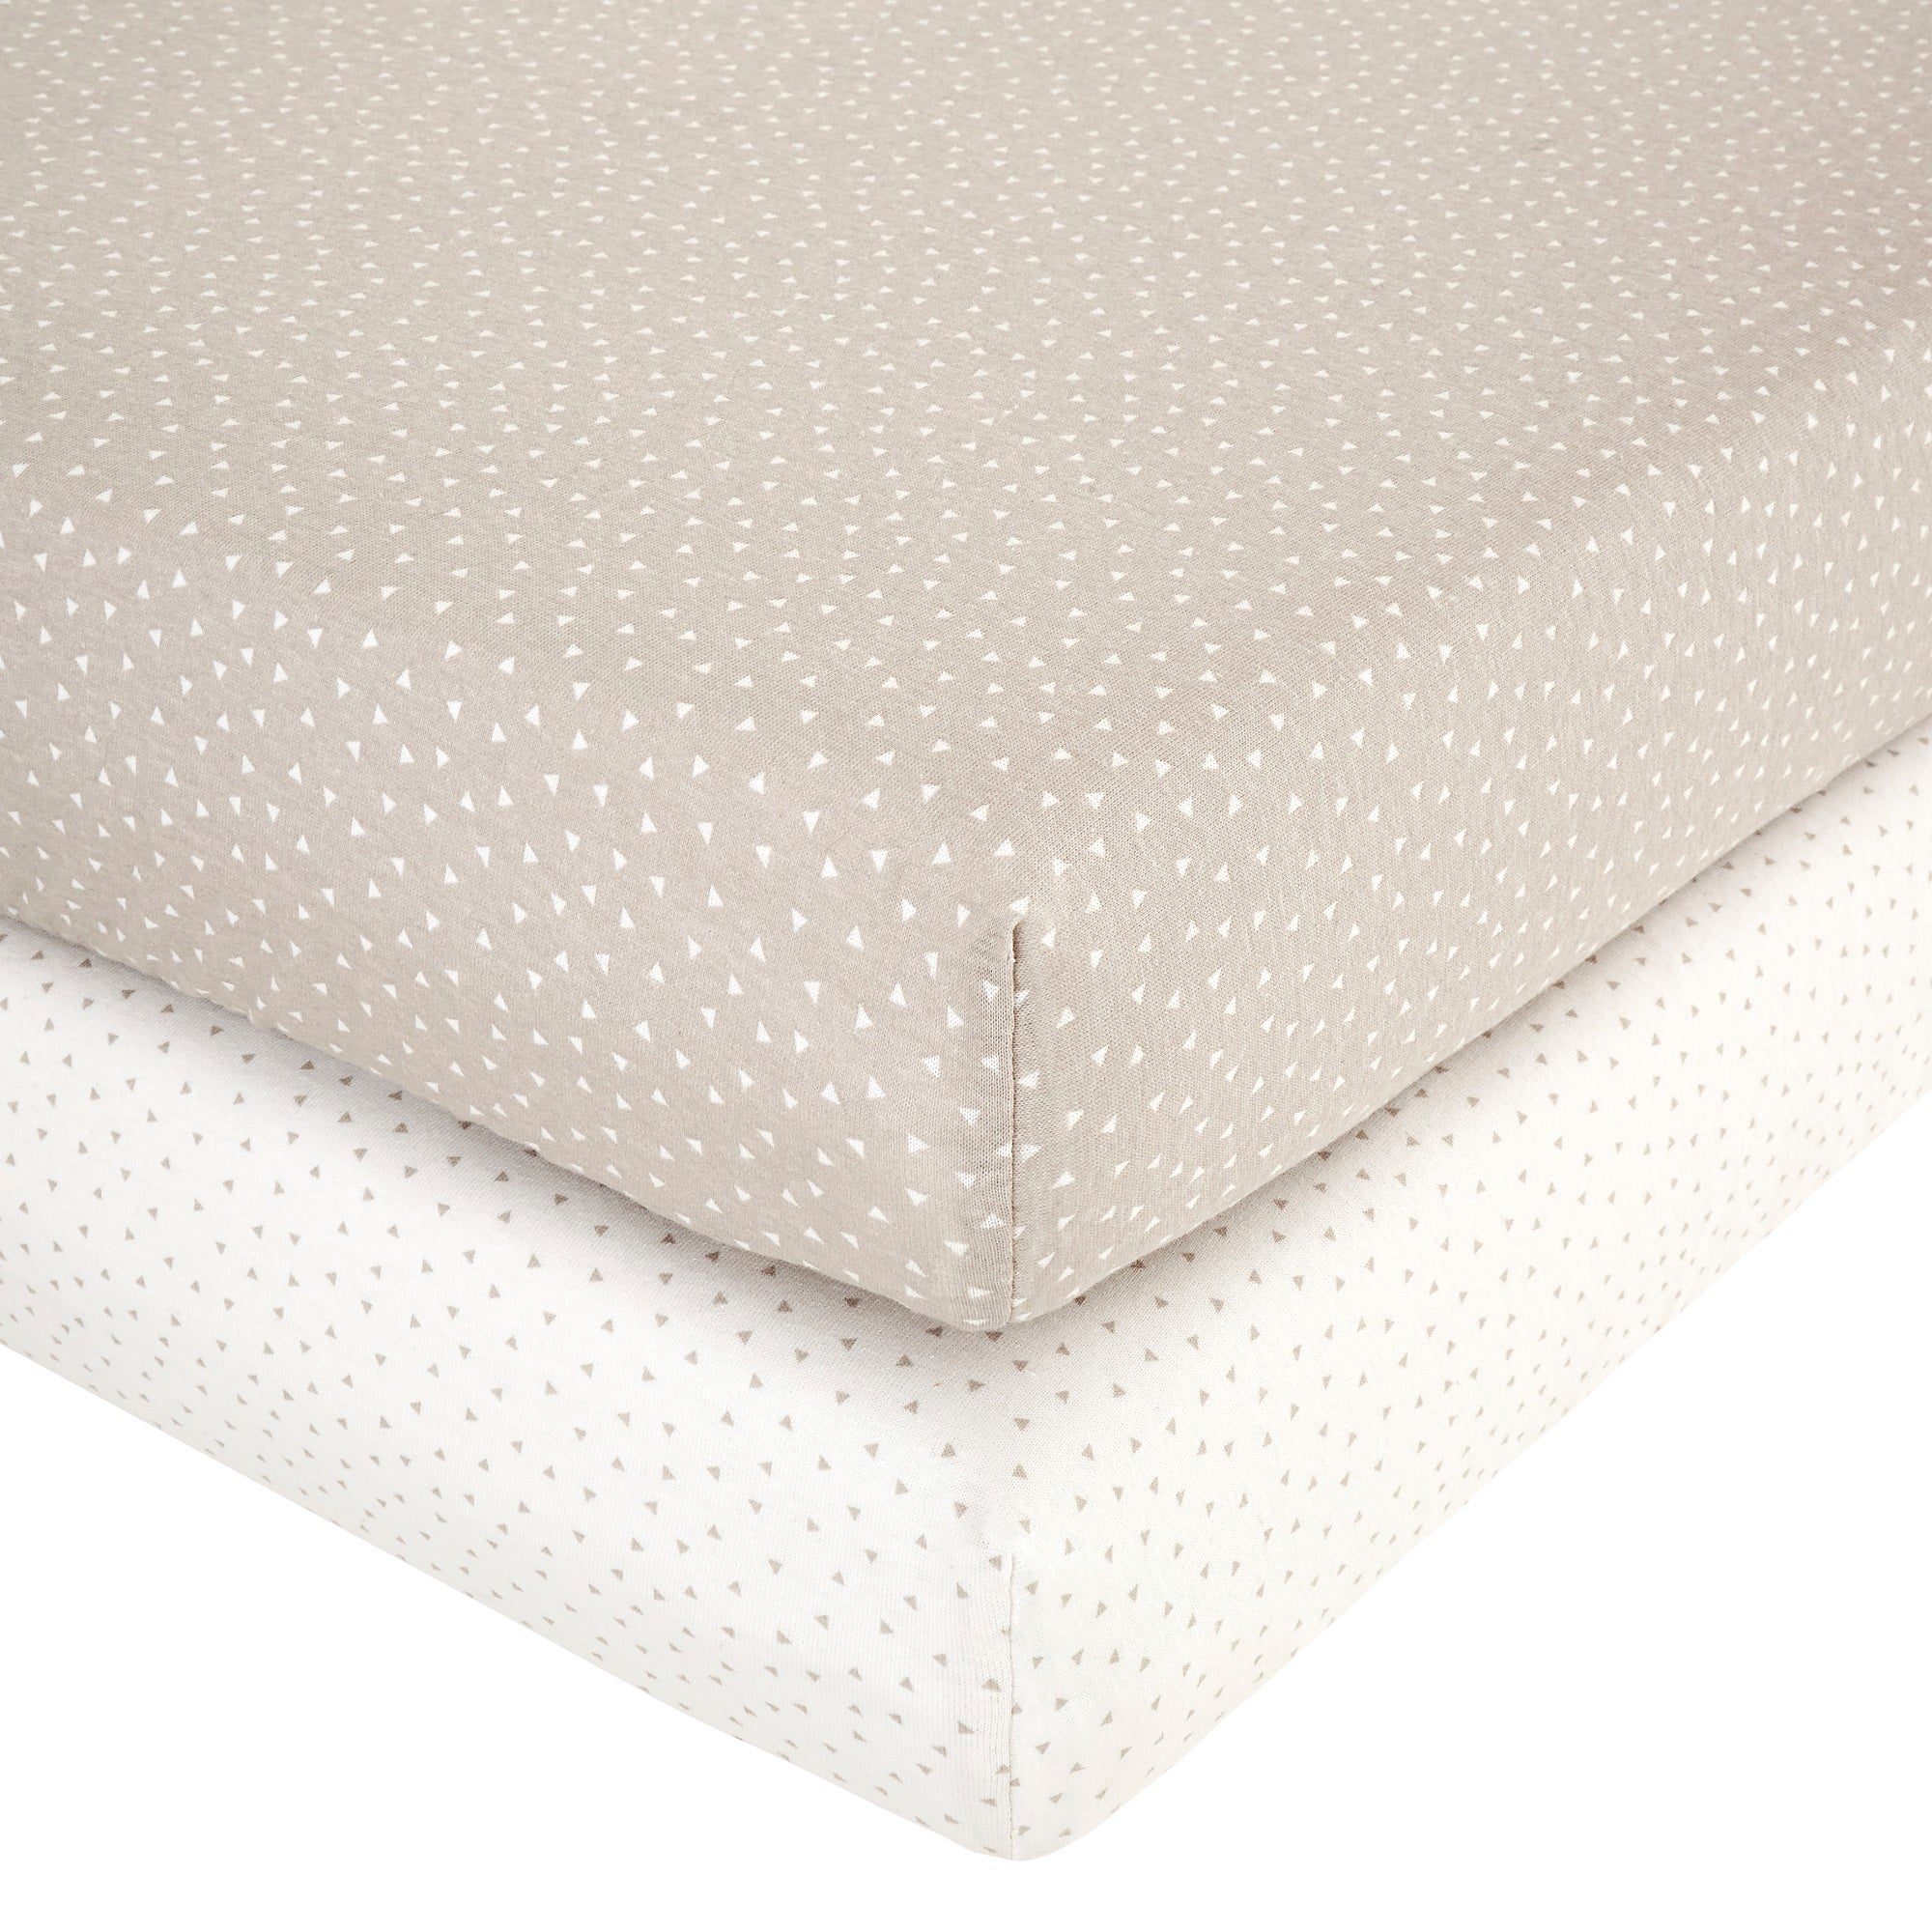 Photo of Bear hugs pack of 2 cot bed fitted sheets natural